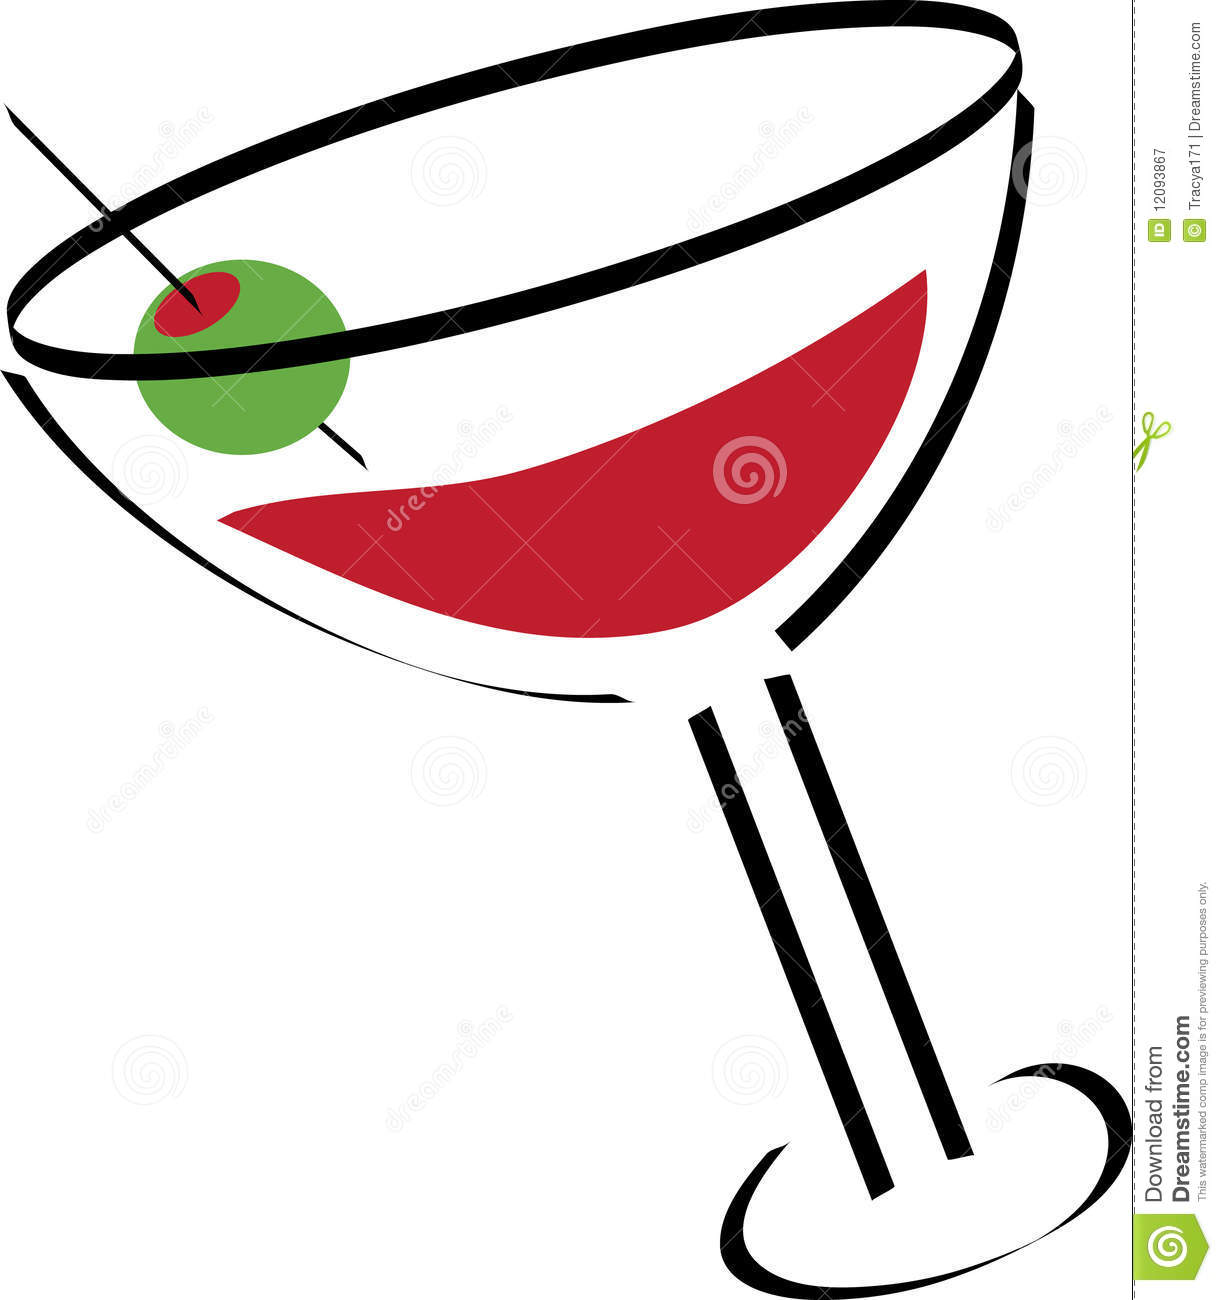 Martini Illustration Royalty Free Stock Photography - Image: 12093867